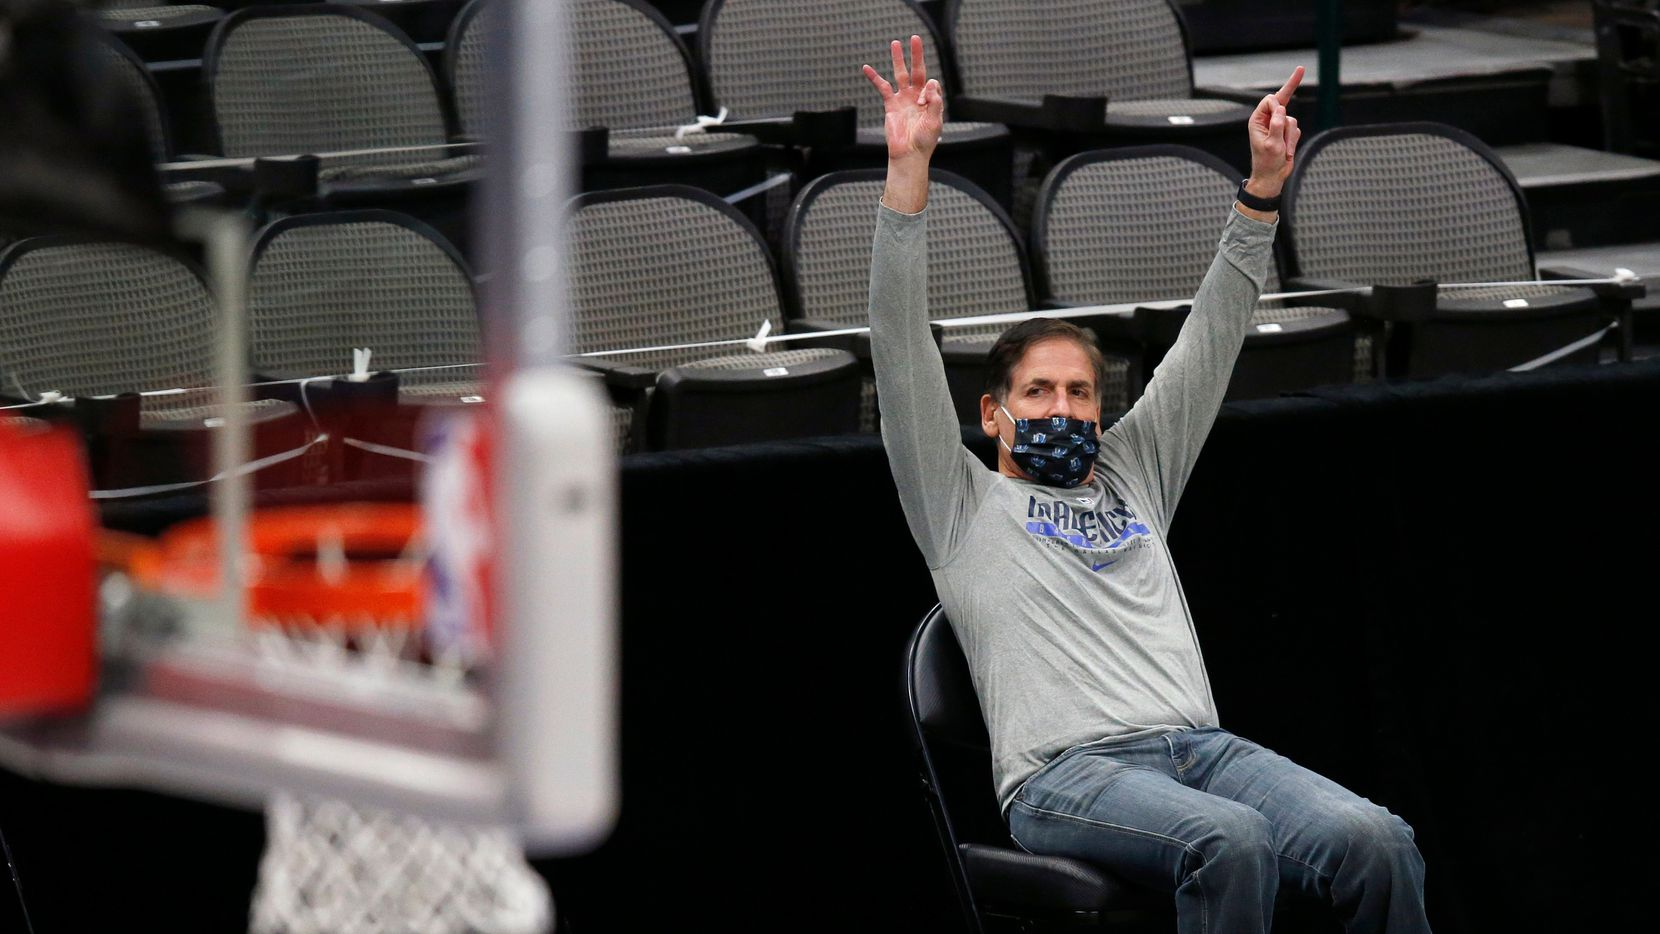 Dallas Mavericks owner Mark Cuban raises his hands for a made three-pointer against the Minnesota Timberwolves in the first quarter at the American Airlines Center in Dallas, Dec. 17, 2020.